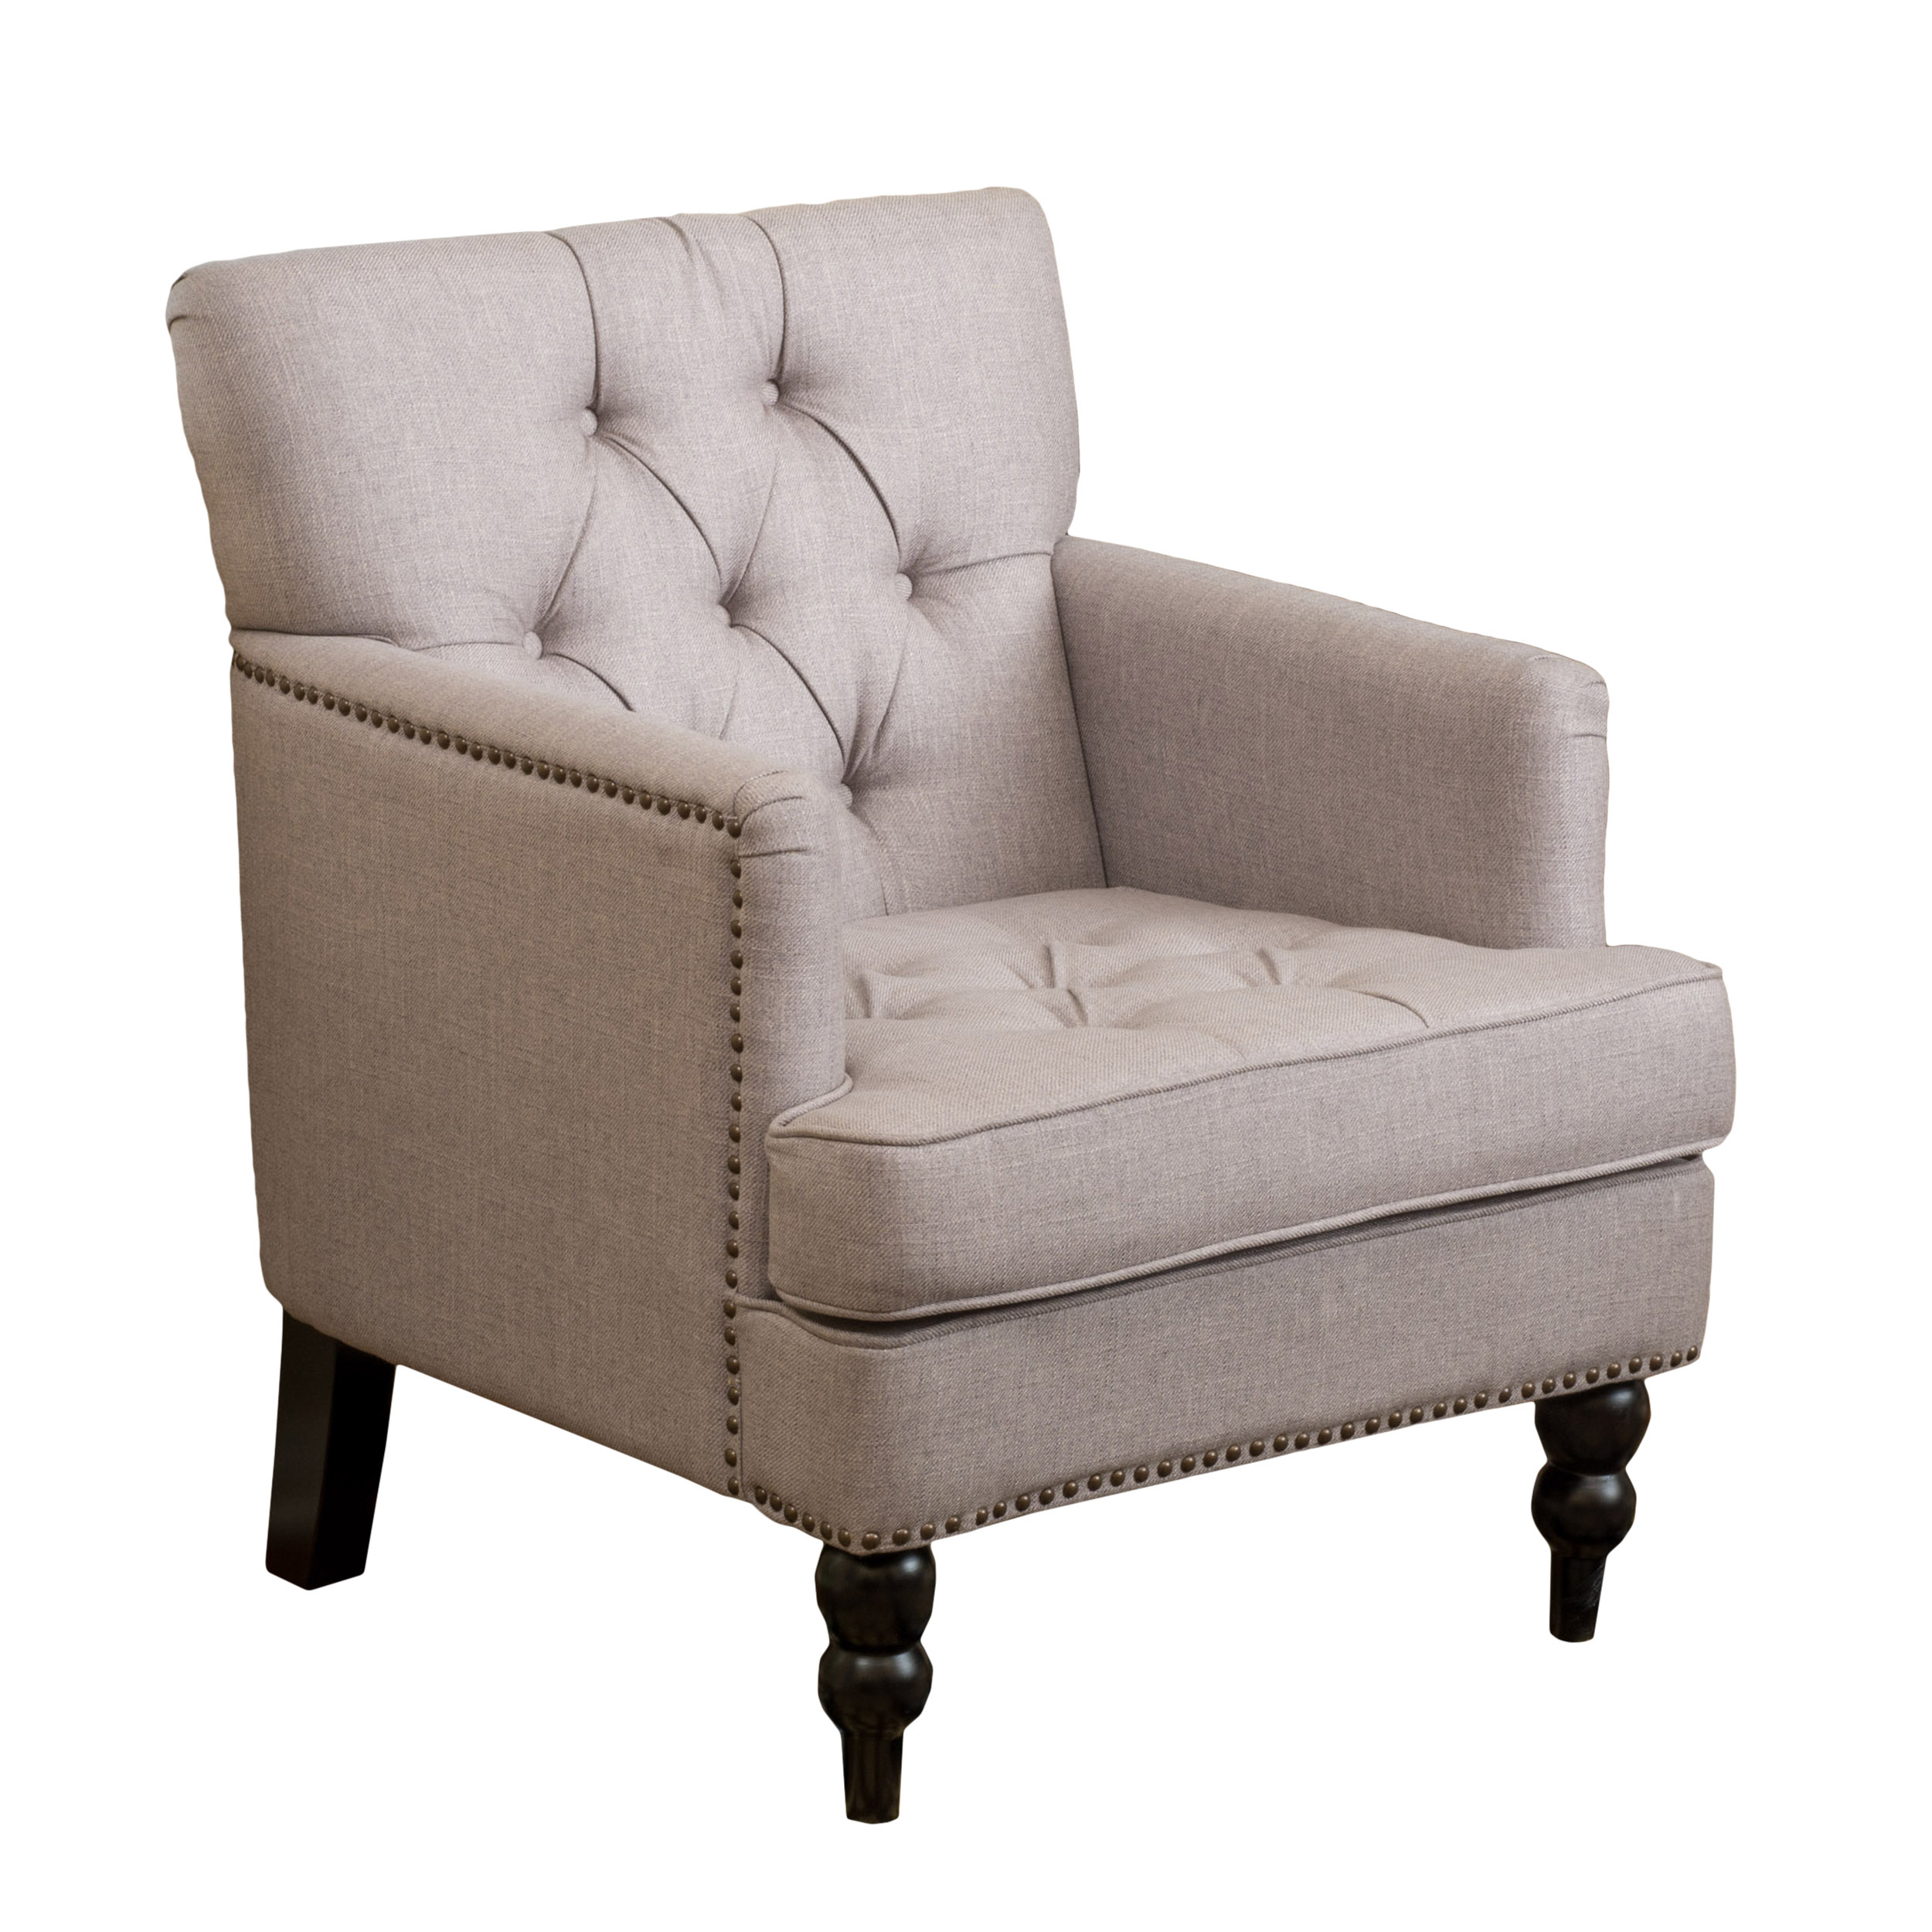 Granada Button Tufted Club Chair With Stud Accents, Multiple Colors    Walmart.com